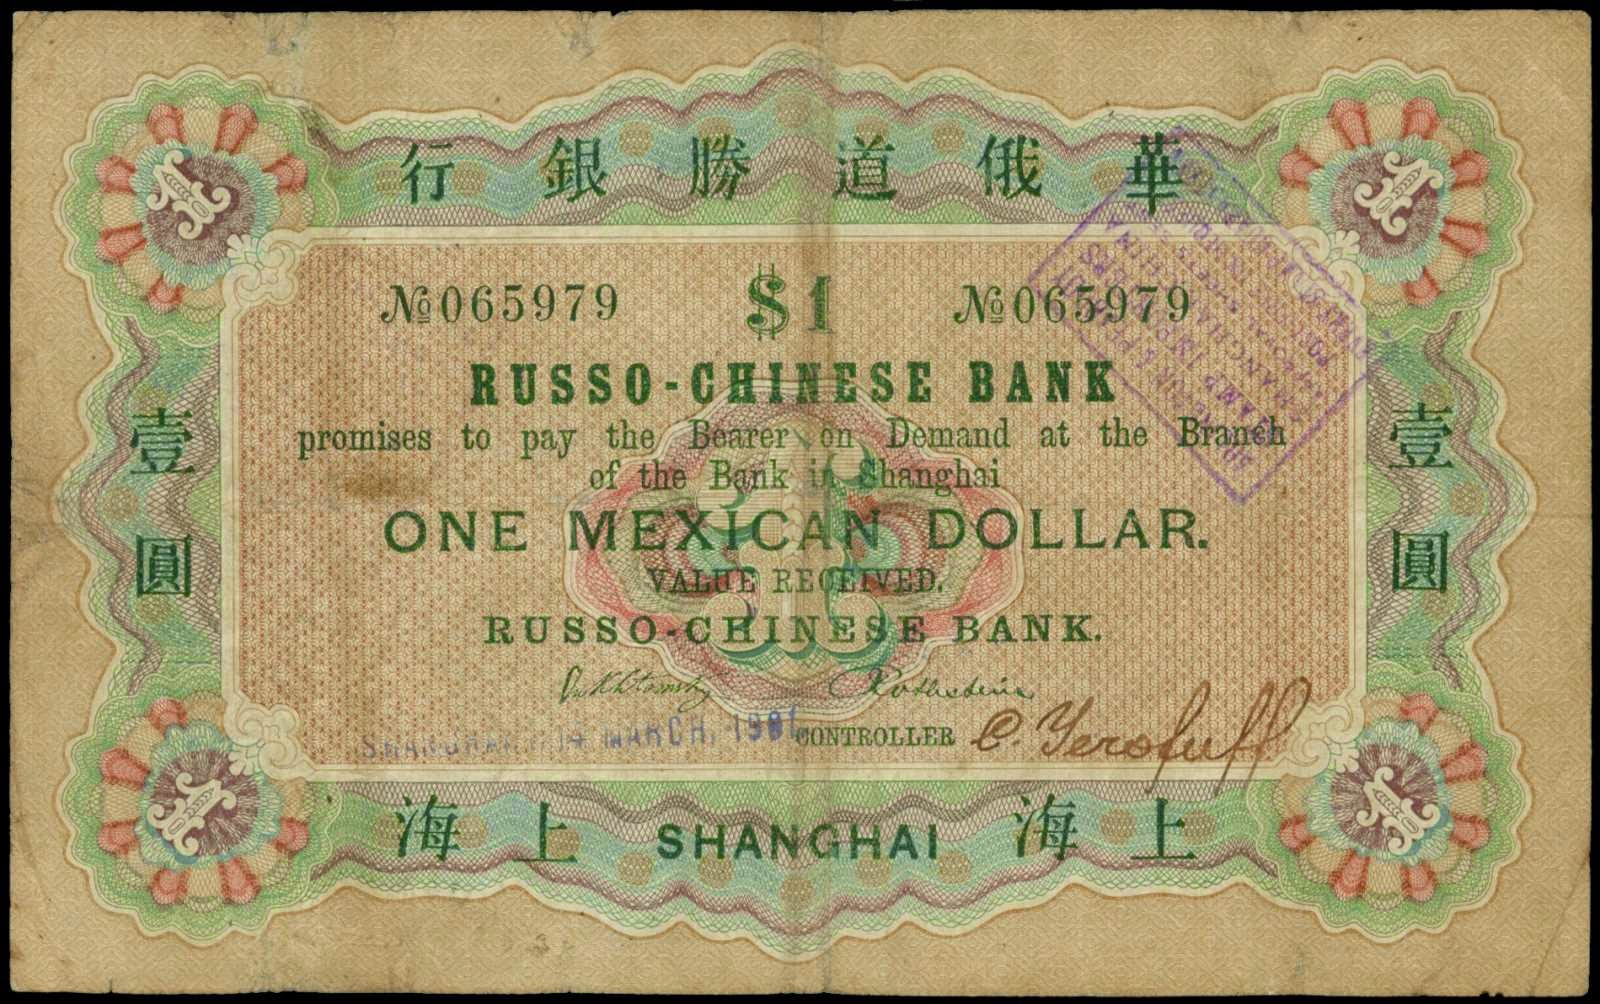 One Mexican Dollar banknote 1901 Russo-Chinese Bank